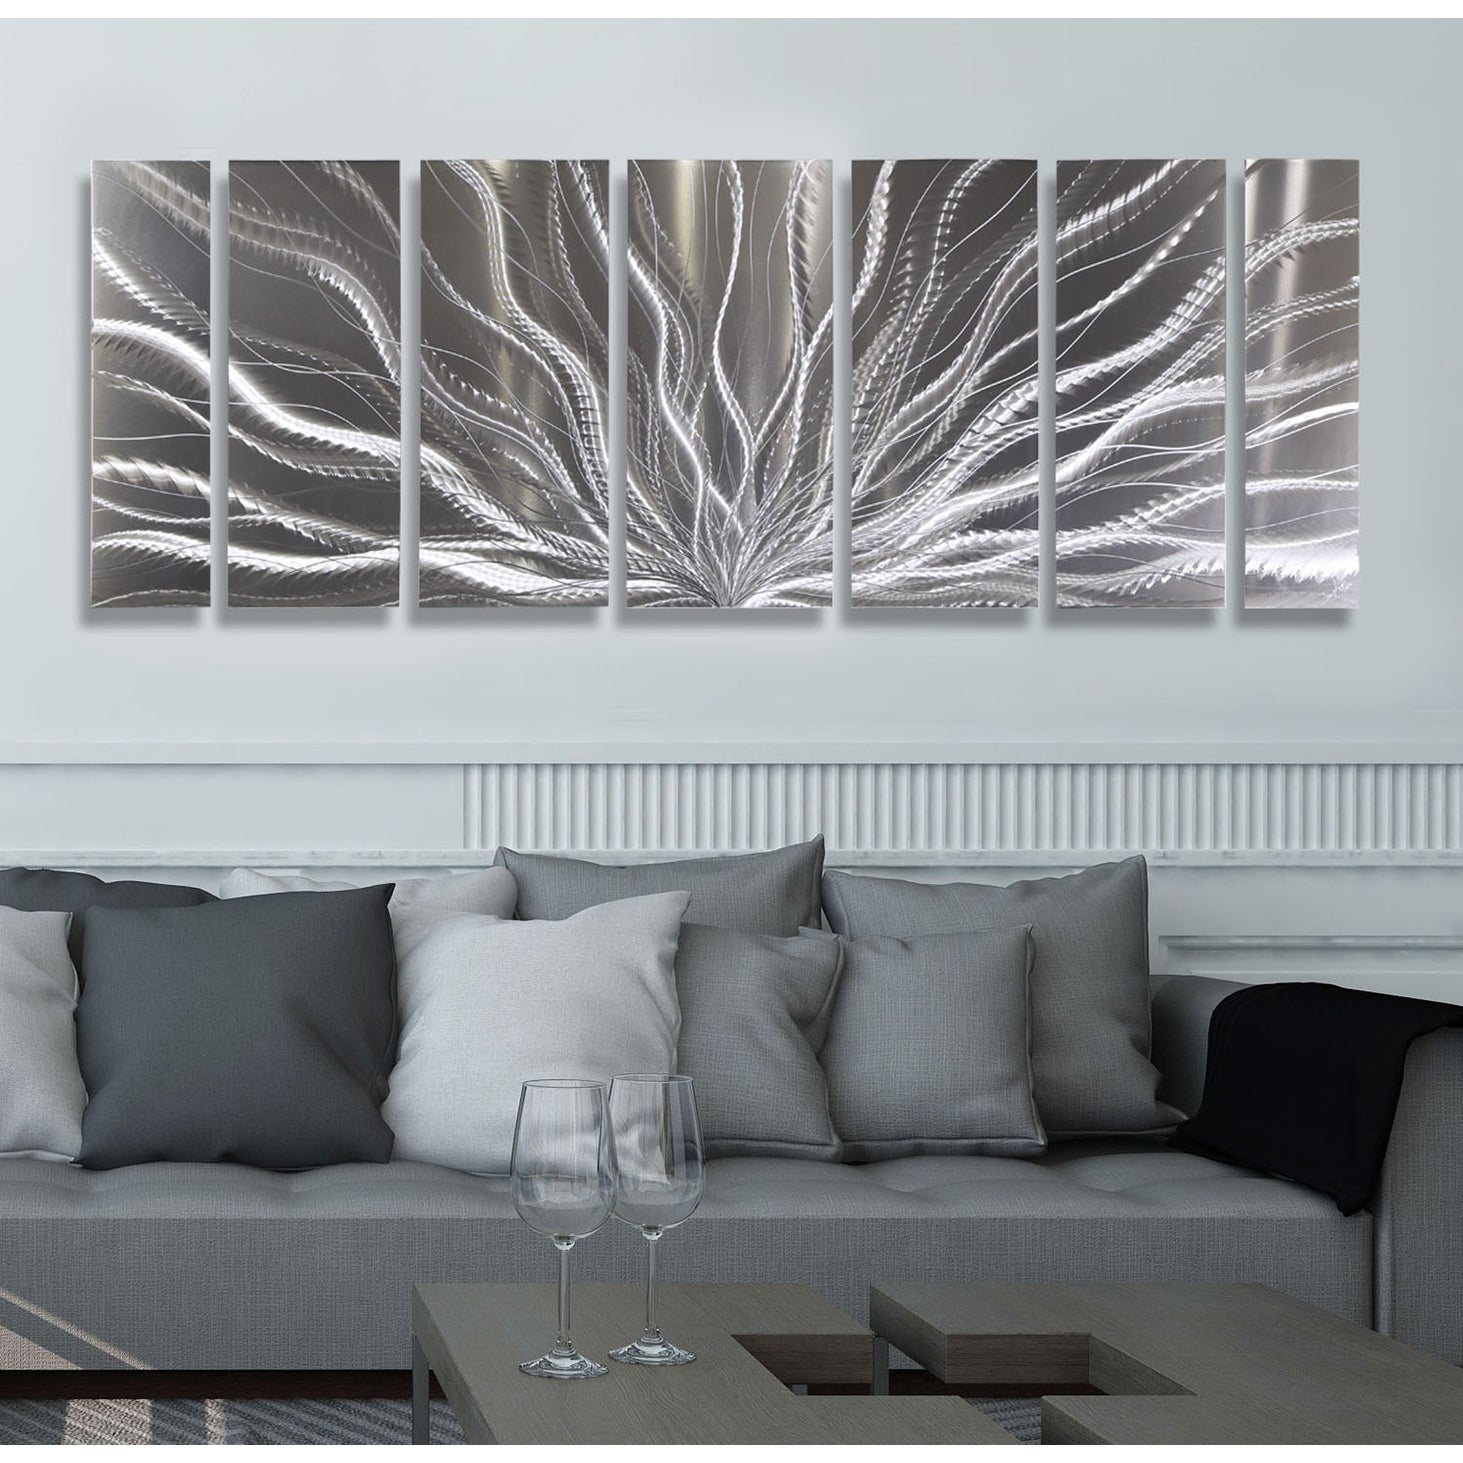 Statements2000 Silver Abstract Etched Metal Wall Art Sculpture by Jon Allen - Galactic Expanse - Thumbnail 0